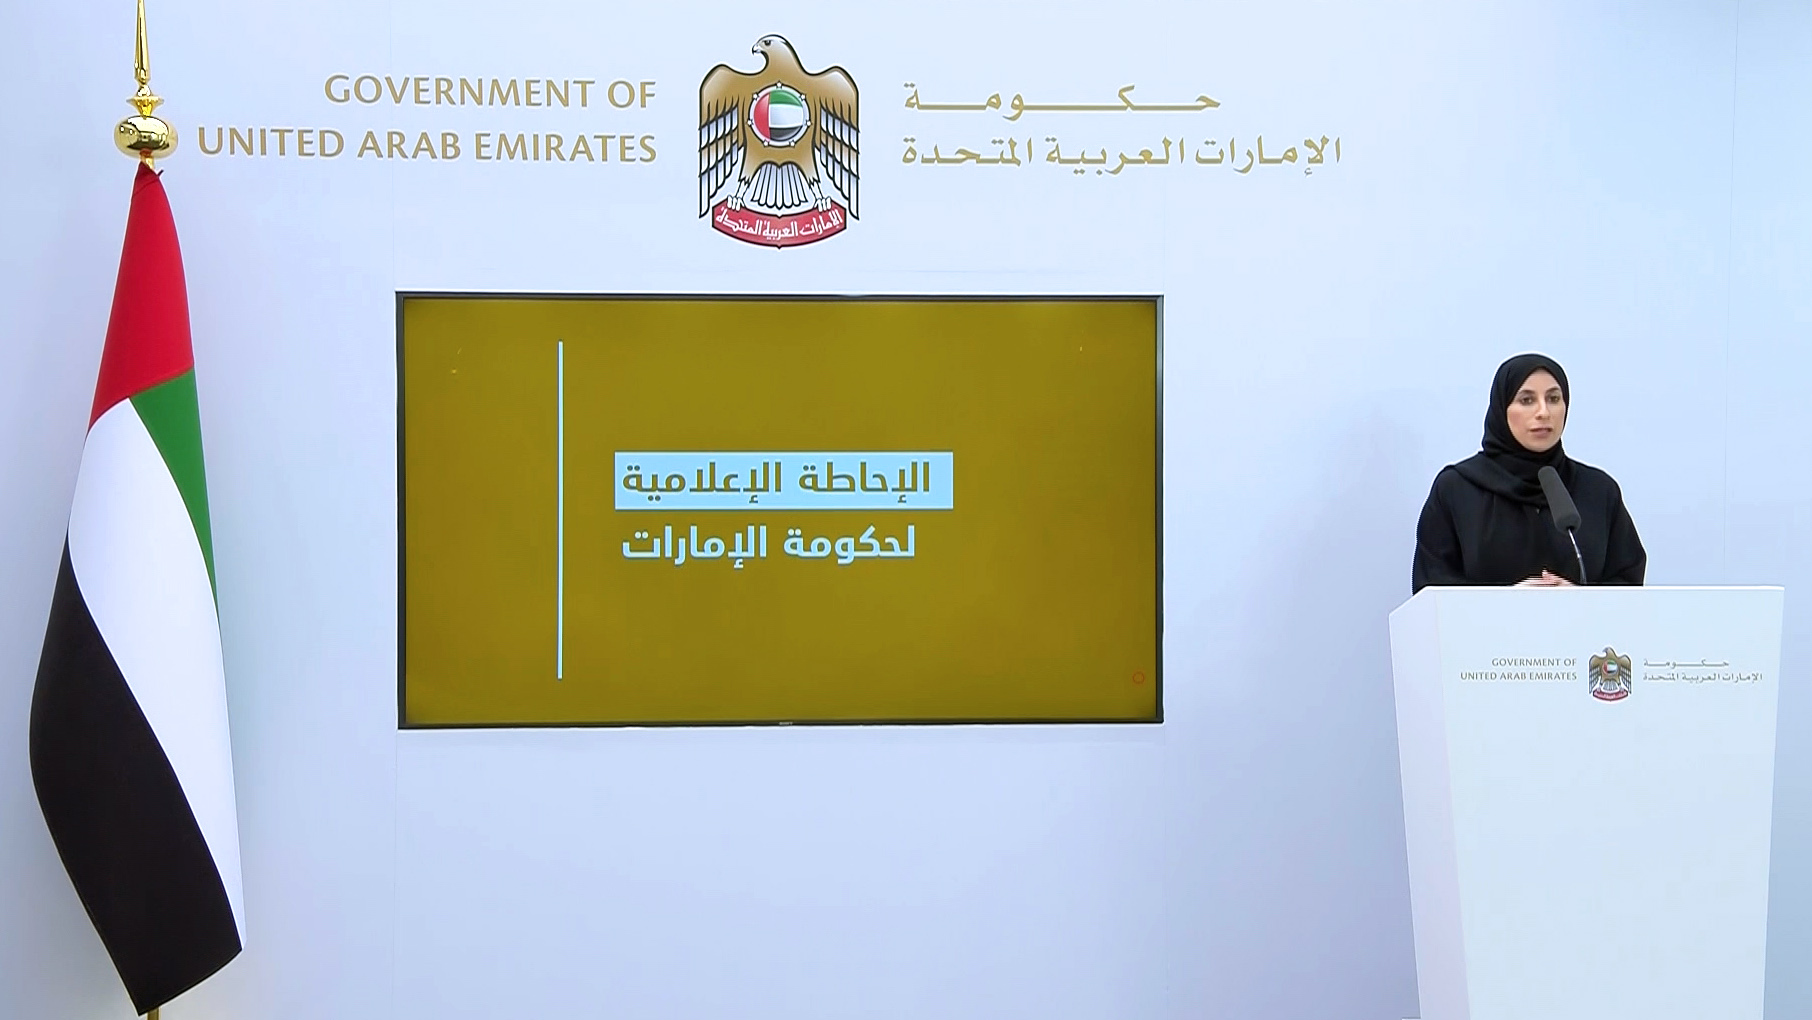 UAE Government: COVID-19 recoveries rise to 17,546; new 726 cases identified